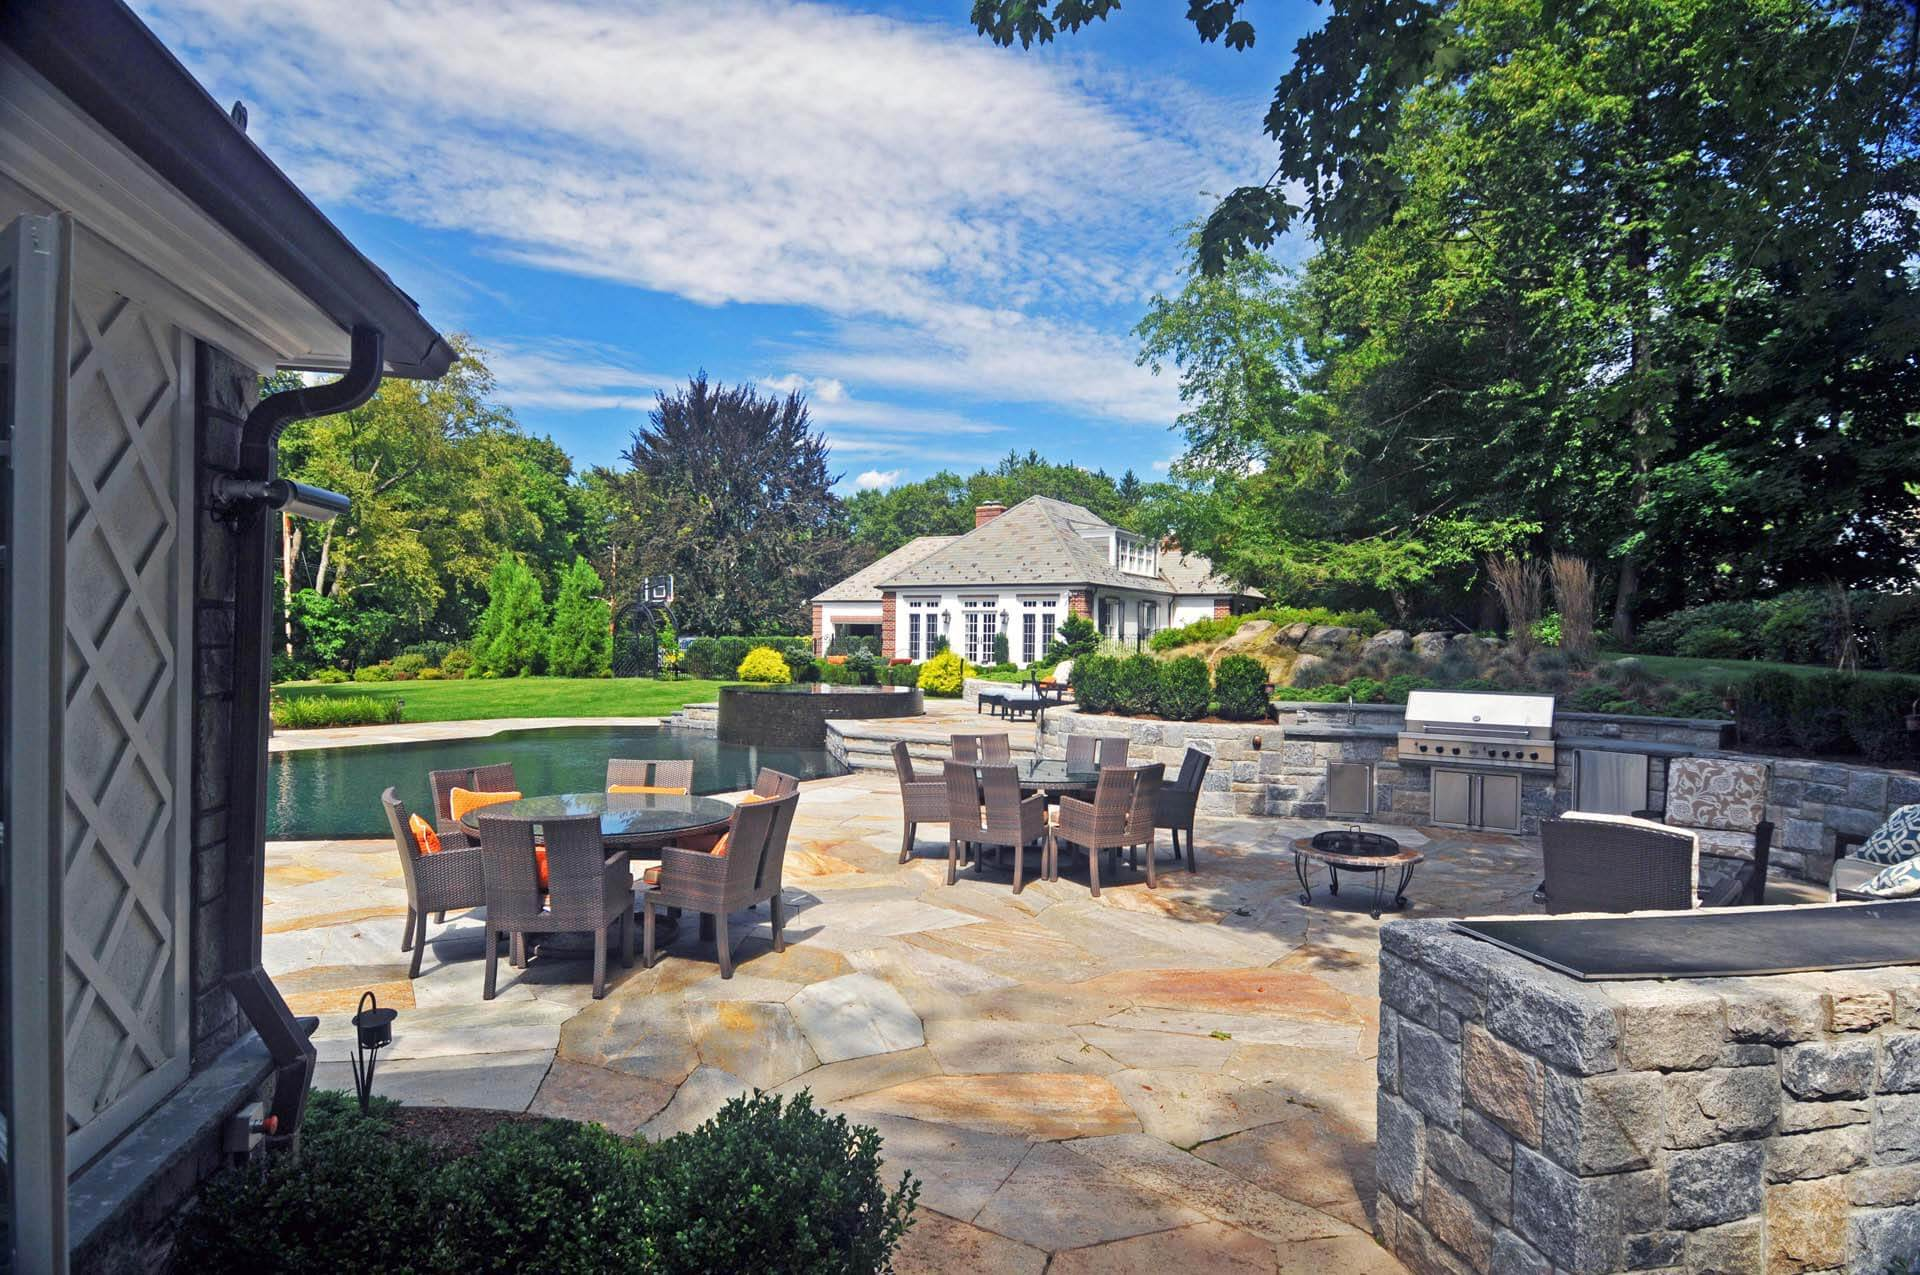 Pool with cabana and outdoor kitchen sean jancski for Pool with outdoor kitchen